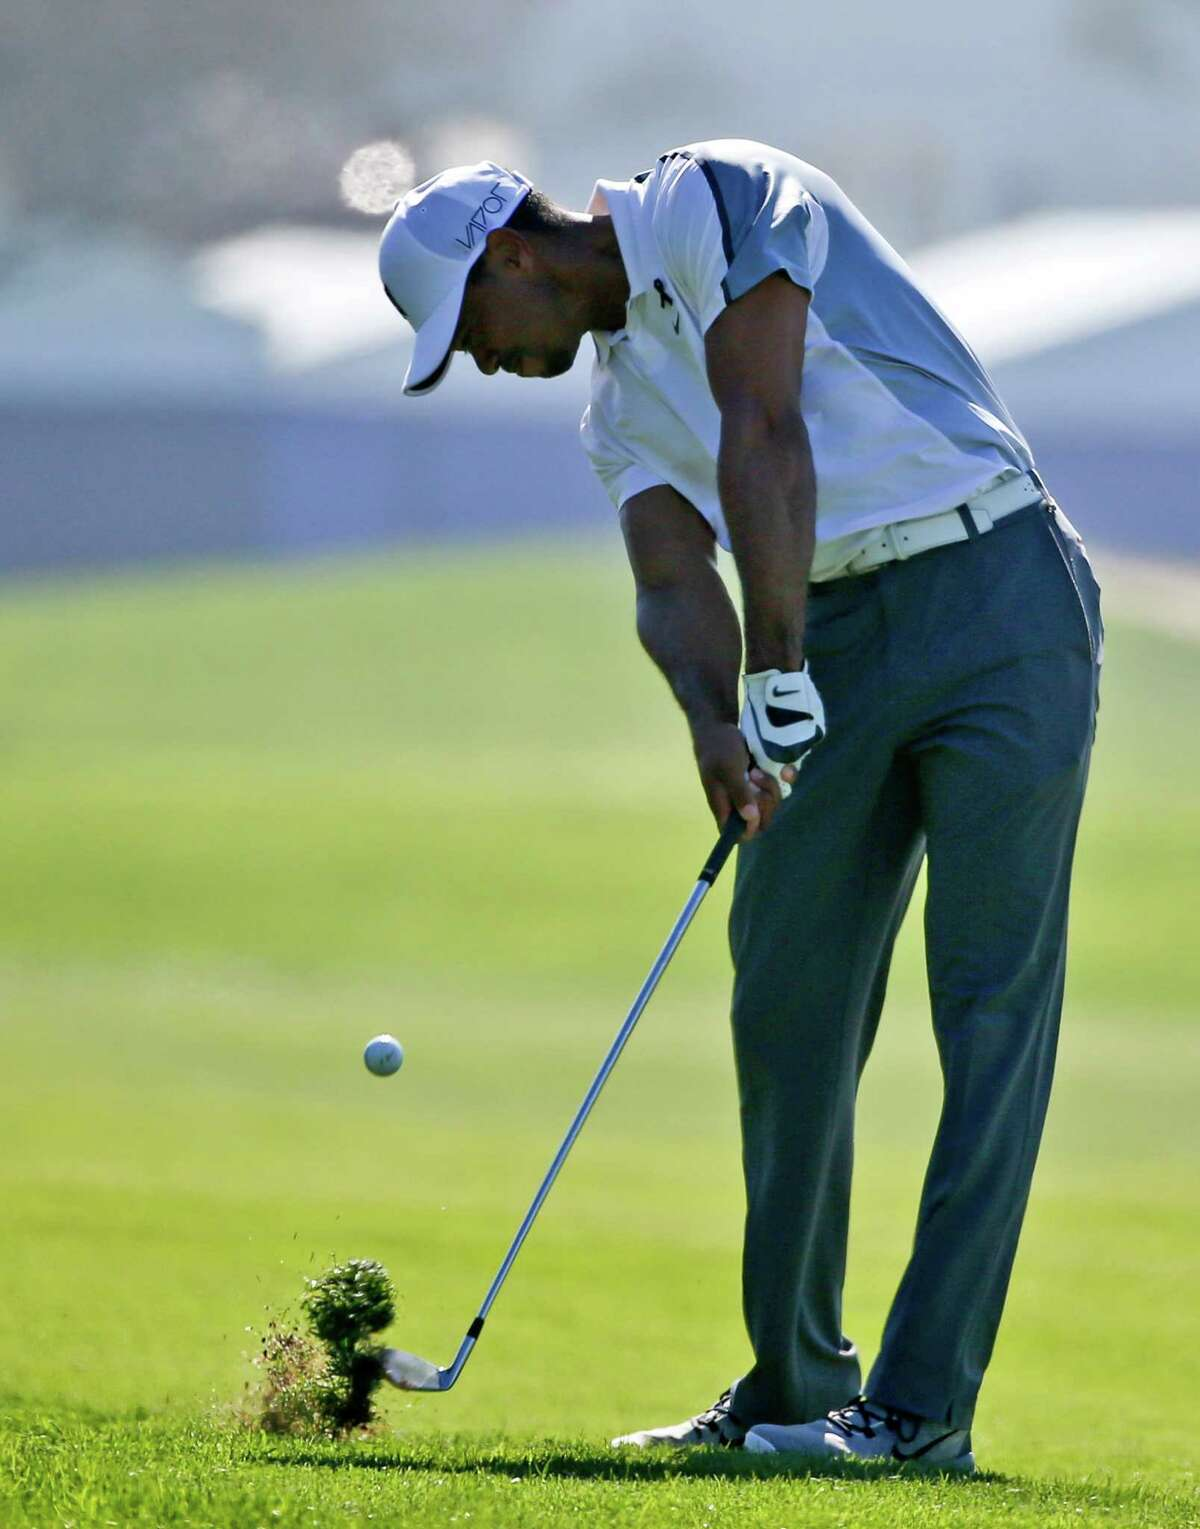 Tiger Woods hits his approach shot to the 10th hole (his first) on the north course at Torrey Pines during the first round of the Farmers Insurance Open golf tournament Thursday, Feb. 5, 2015, in San Diego. Woods missed the green with the short shot and made bogie. (AP Photo/Lenny Ignelzi) ORG XMIT: CALI105